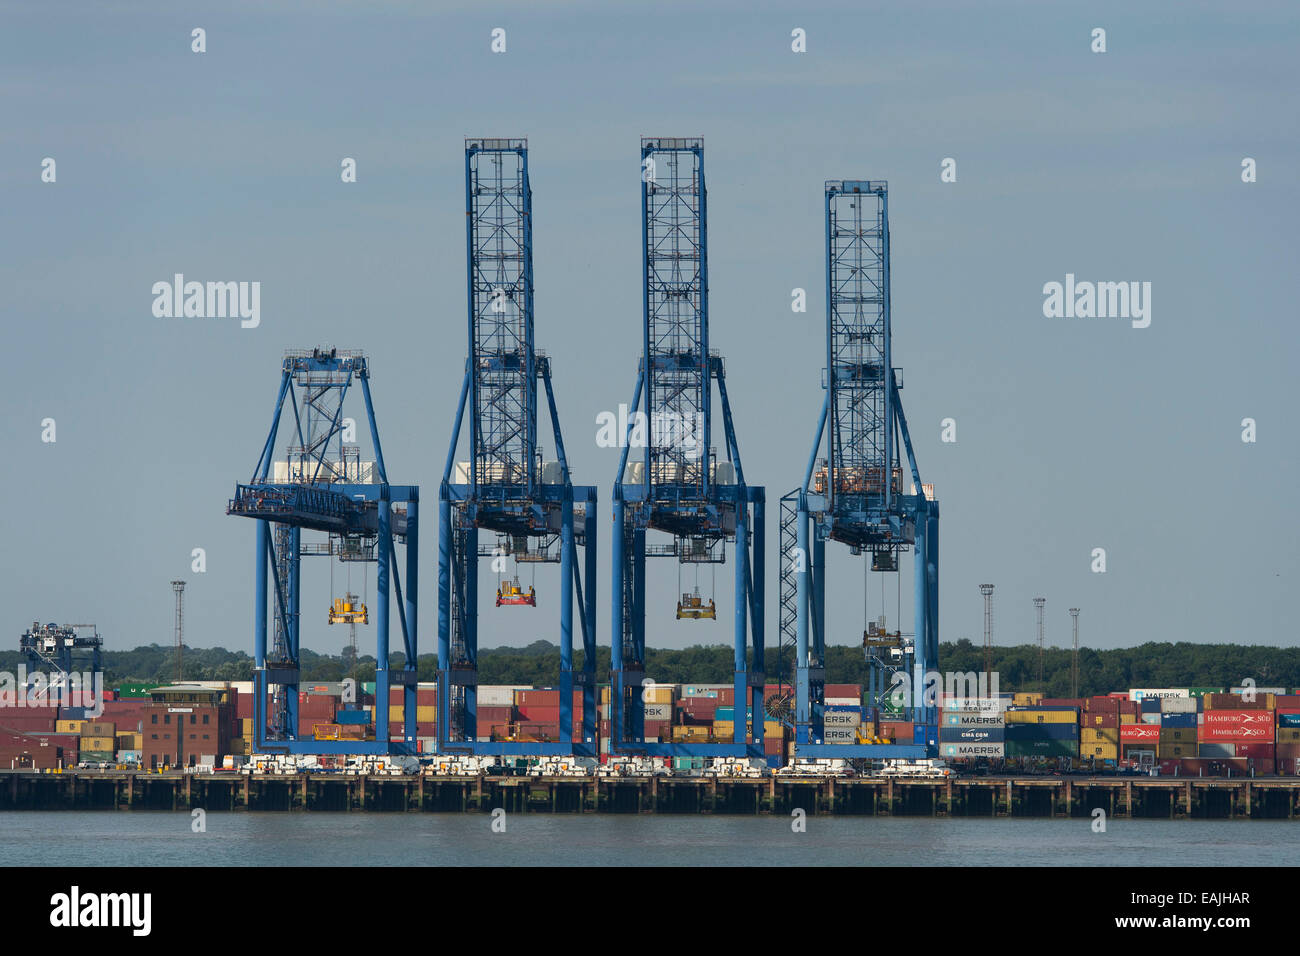 See-Container am Hafen Felixstowe in England, UK. Stockfoto